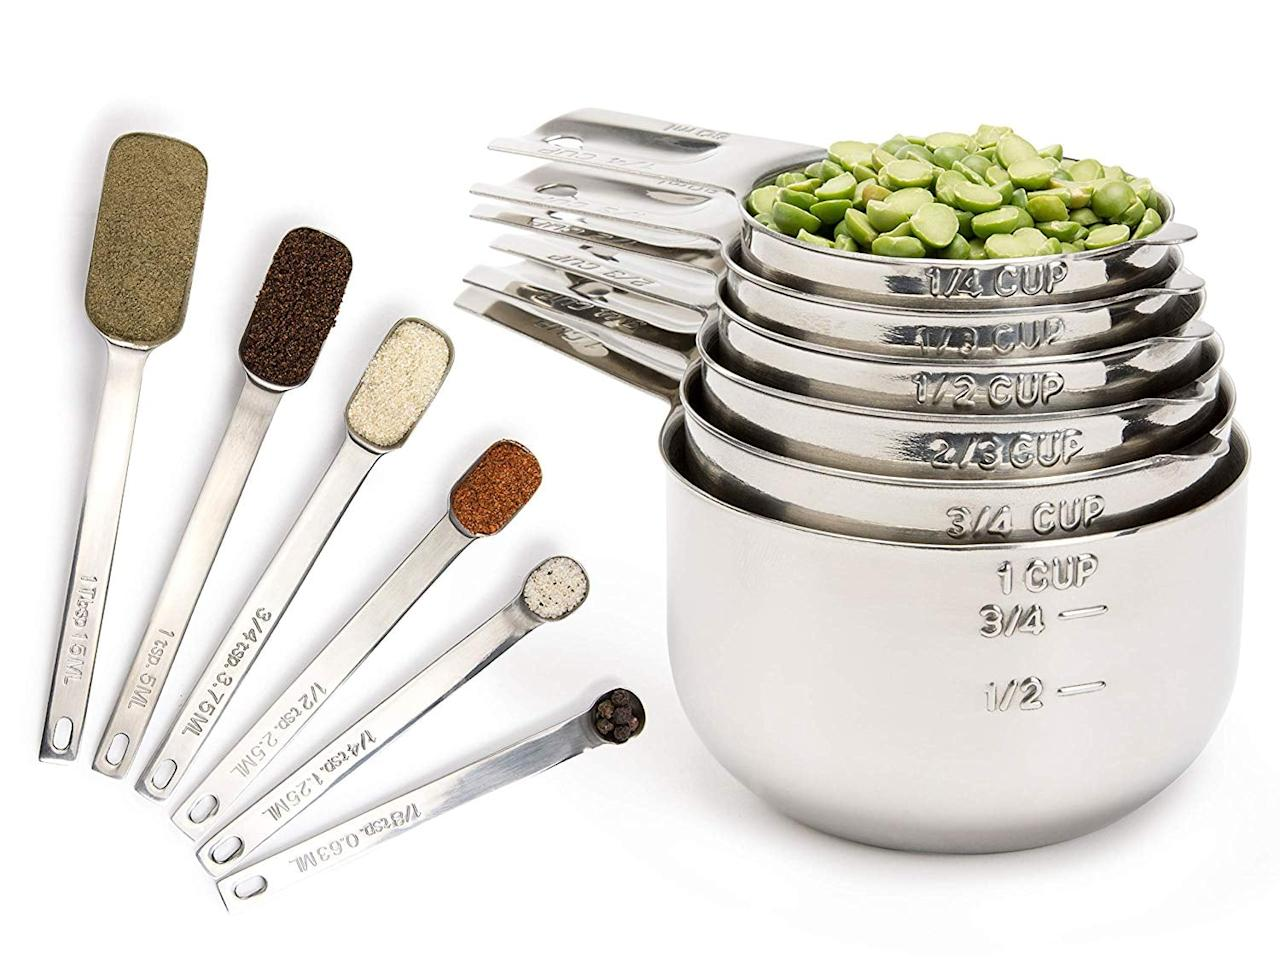 "<p>Feel like a pro with this luxe <a href=""https://www.popsugar.com/buy/Simply-Gourmet-Measuring-Cups-Measuring-Spoons-Set-433724?p_name=Simply%20Gourmet%20Measuring%20Cups%20and%20Measuring%20Spoons%20Set&retailer=amazon.com&pid=433724&price=30&evar1=moms%3Aus&evar9=46019155&evar98=https%3A%2F%2Fwww.popsugar.com%2Fphoto-gallery%2F46019155%2Fimage%2F46019240%2FSimply-Gourmet-Measuring-Cups-Measuring-Spoons-Set&list1=shopping%2Camazon%2Cgadgets%2Ckitchen%20tools%2Ckitchens&prop13=api&pdata=1"" rel=""nofollow"" data-shoppable-link=""1"" target=""_blank"" class=""ga-track"" data-ga-category=""Related"" data-ga-label=""https://www.amazon.com/Measuring-Simply-Gourmet-Stainless-Nesting/dp/B01E2HU4A2/ref=sr_1_3?keywords=measuring+cup&amp;qid=1554936131&amp;s=gateway&amp;sr=8-3"" data-ga-action=""In-Line Links"">Simply Gourmet Measuring Cups and Measuring Spoons Set</a> ($30).</p>"